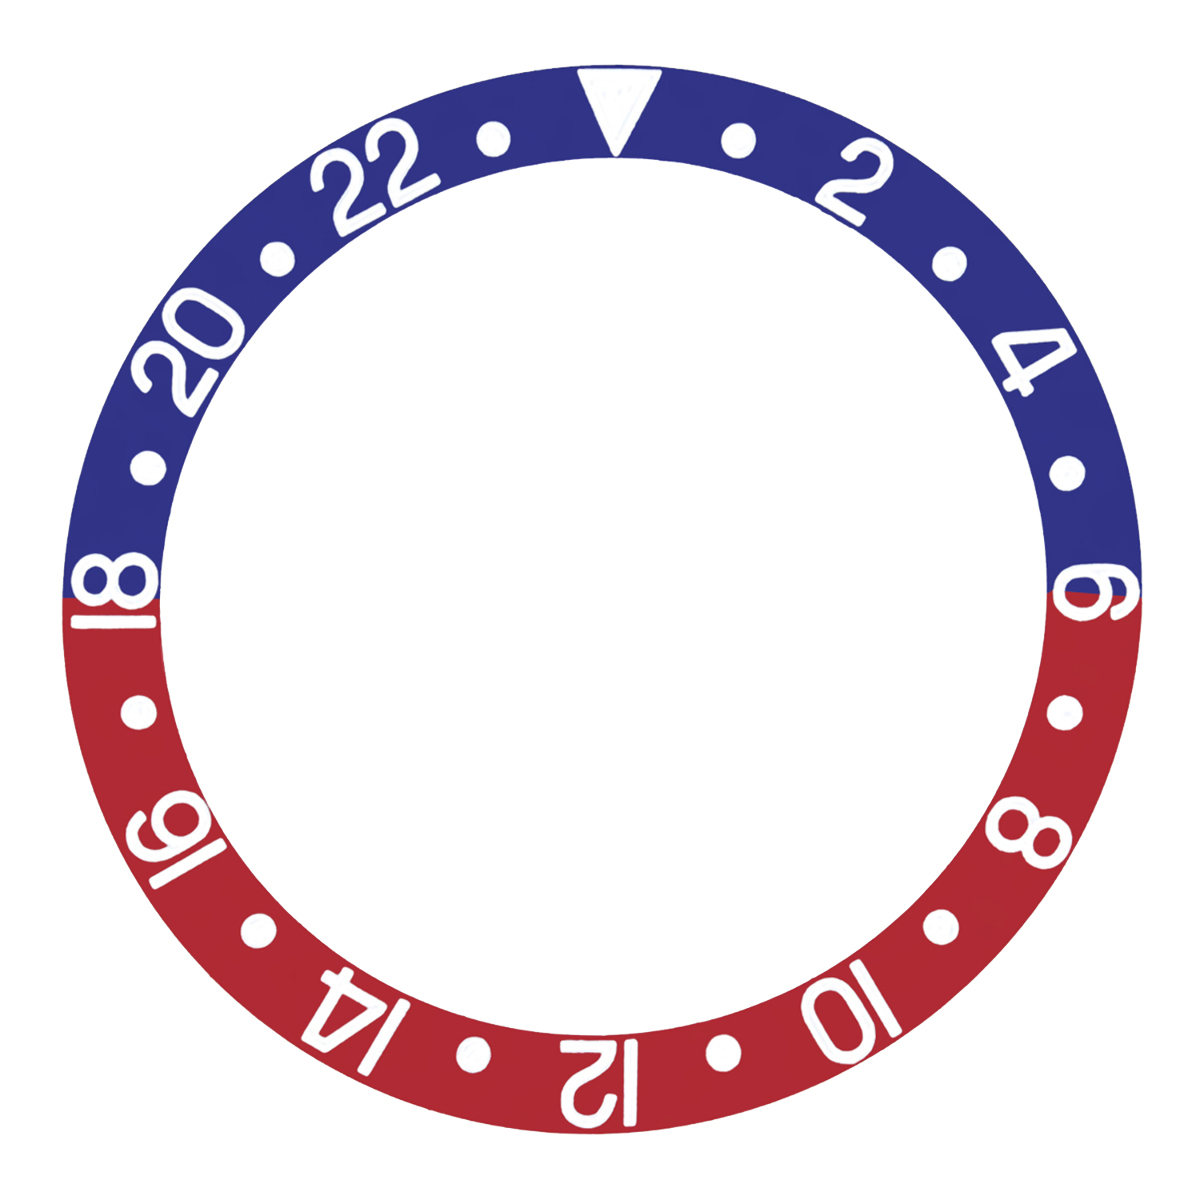 REPLACEMENT BEZEL INSERT BLUE/RED FOR WATCH 37.70MM X 30.70MM